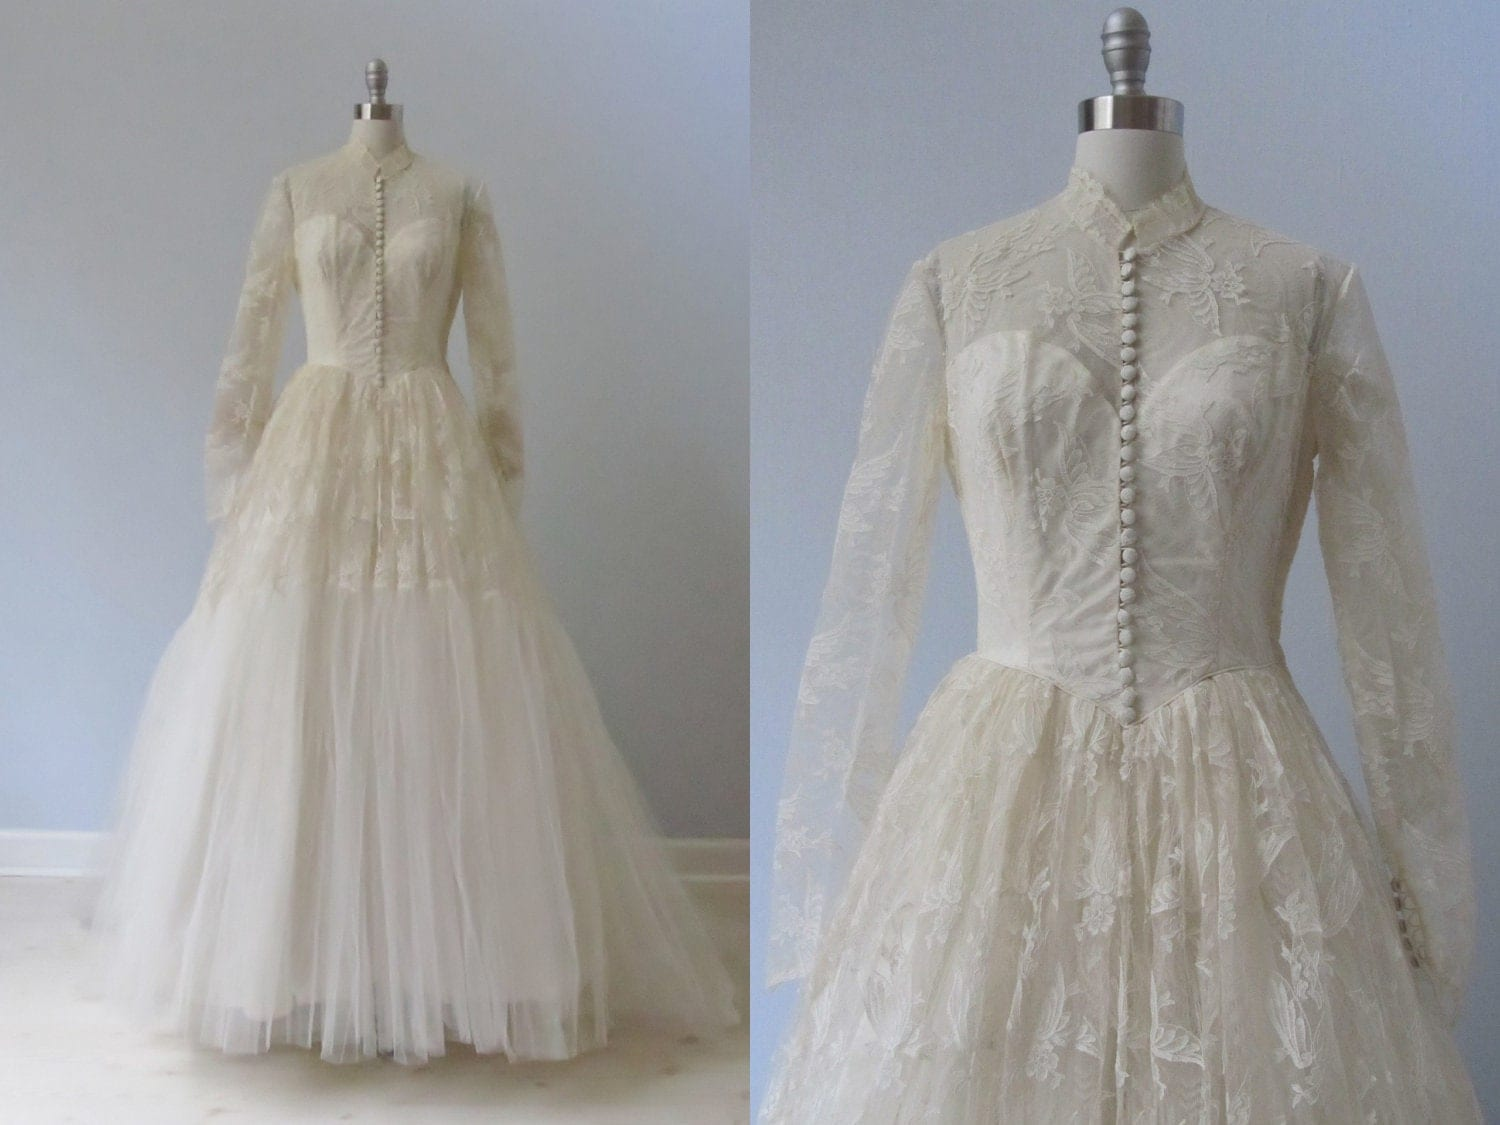 Vintage 1950s wedding dresses cheap wedding dresses for Vintage wedding dresses for cheap